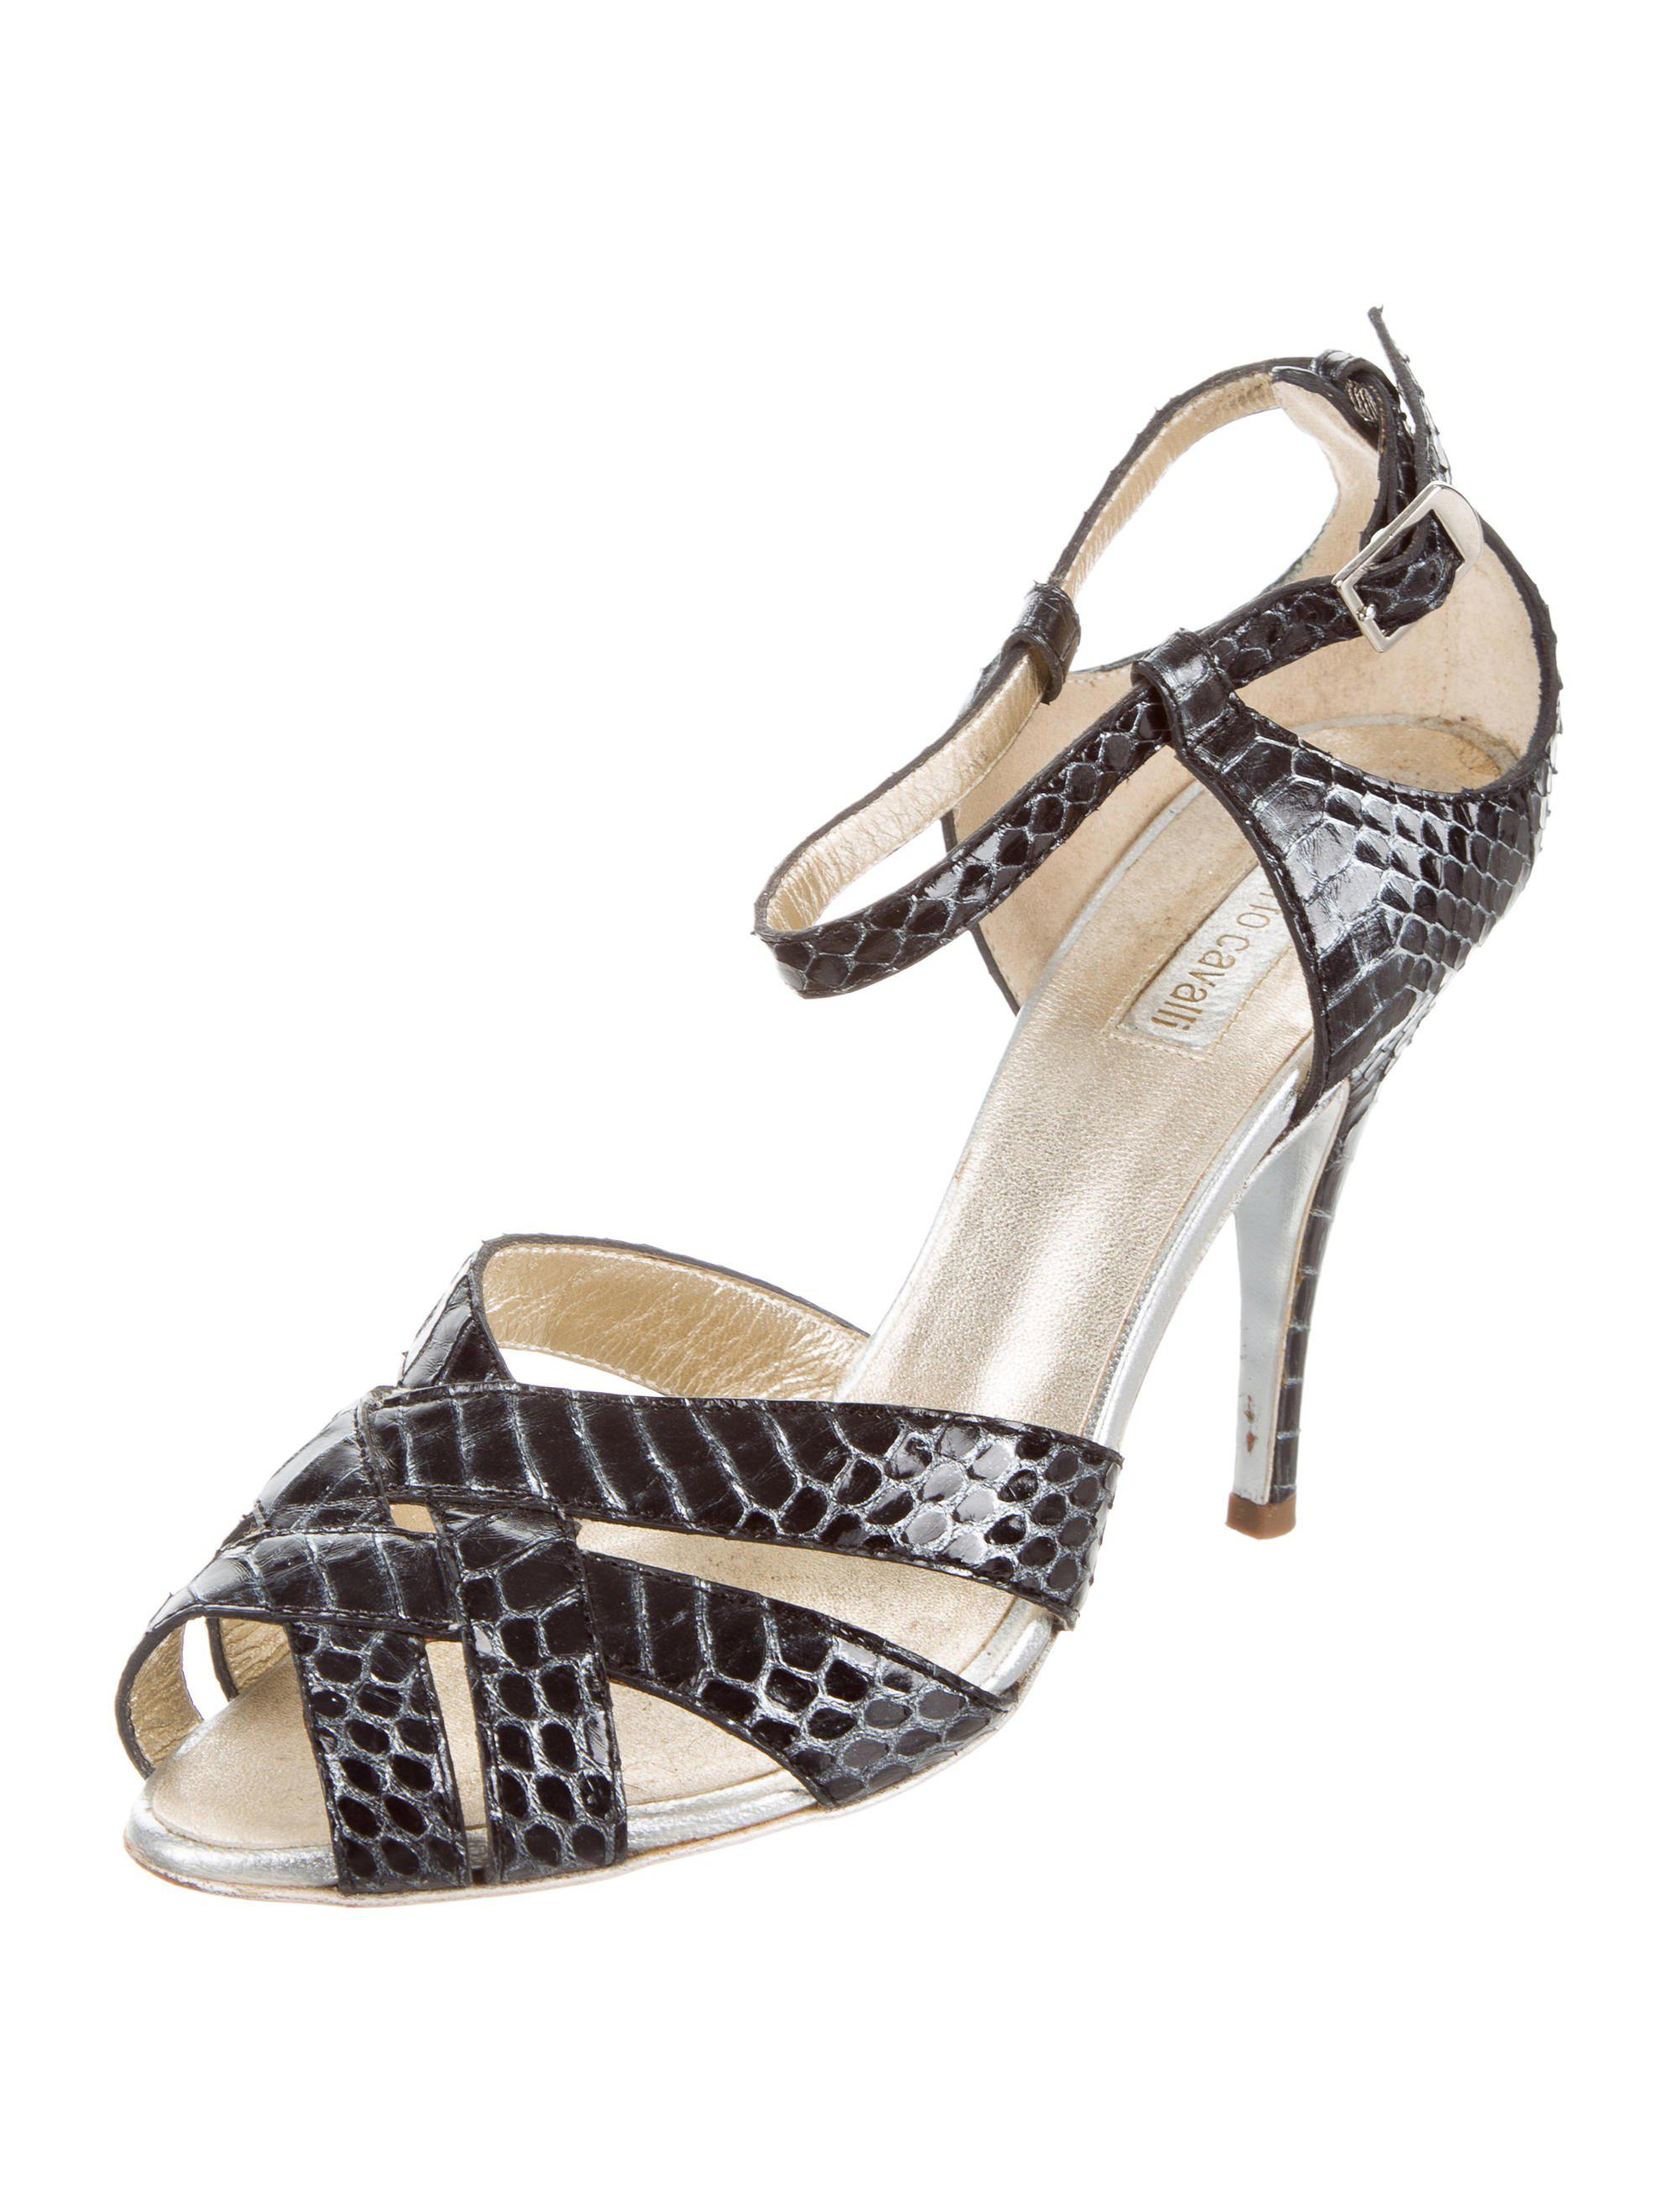 discount for cheap prices cheap price Roberto Cavalli Python Crossover Sandals discount best prices cost outlet wiki H85GEiTlL